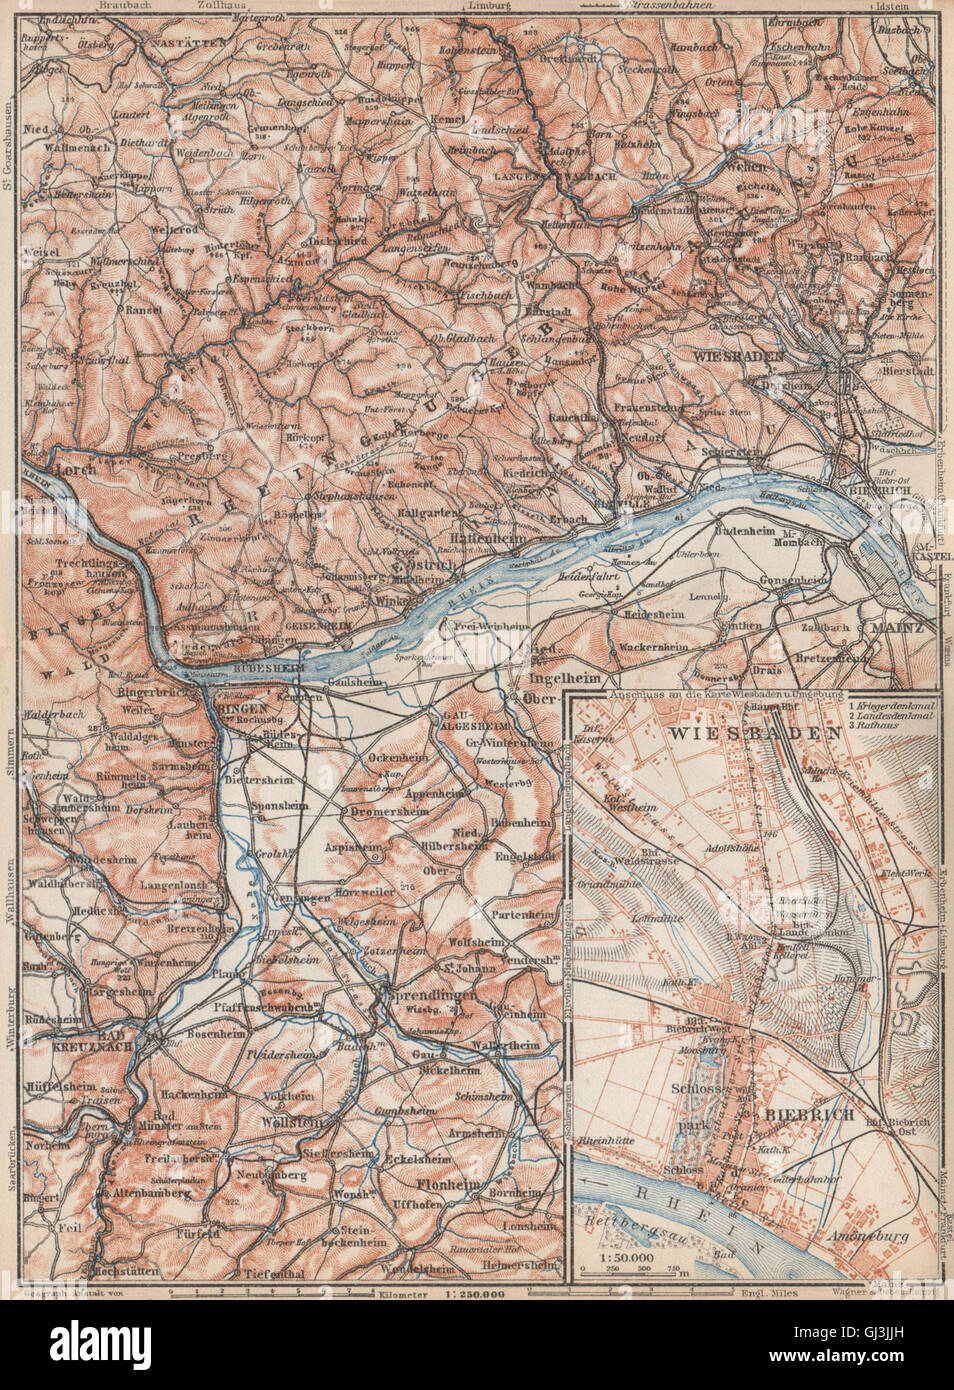 THE RHEINGAU topo-map. Wiesbaden Lorch Rüdesheim Mainz. Germany ...